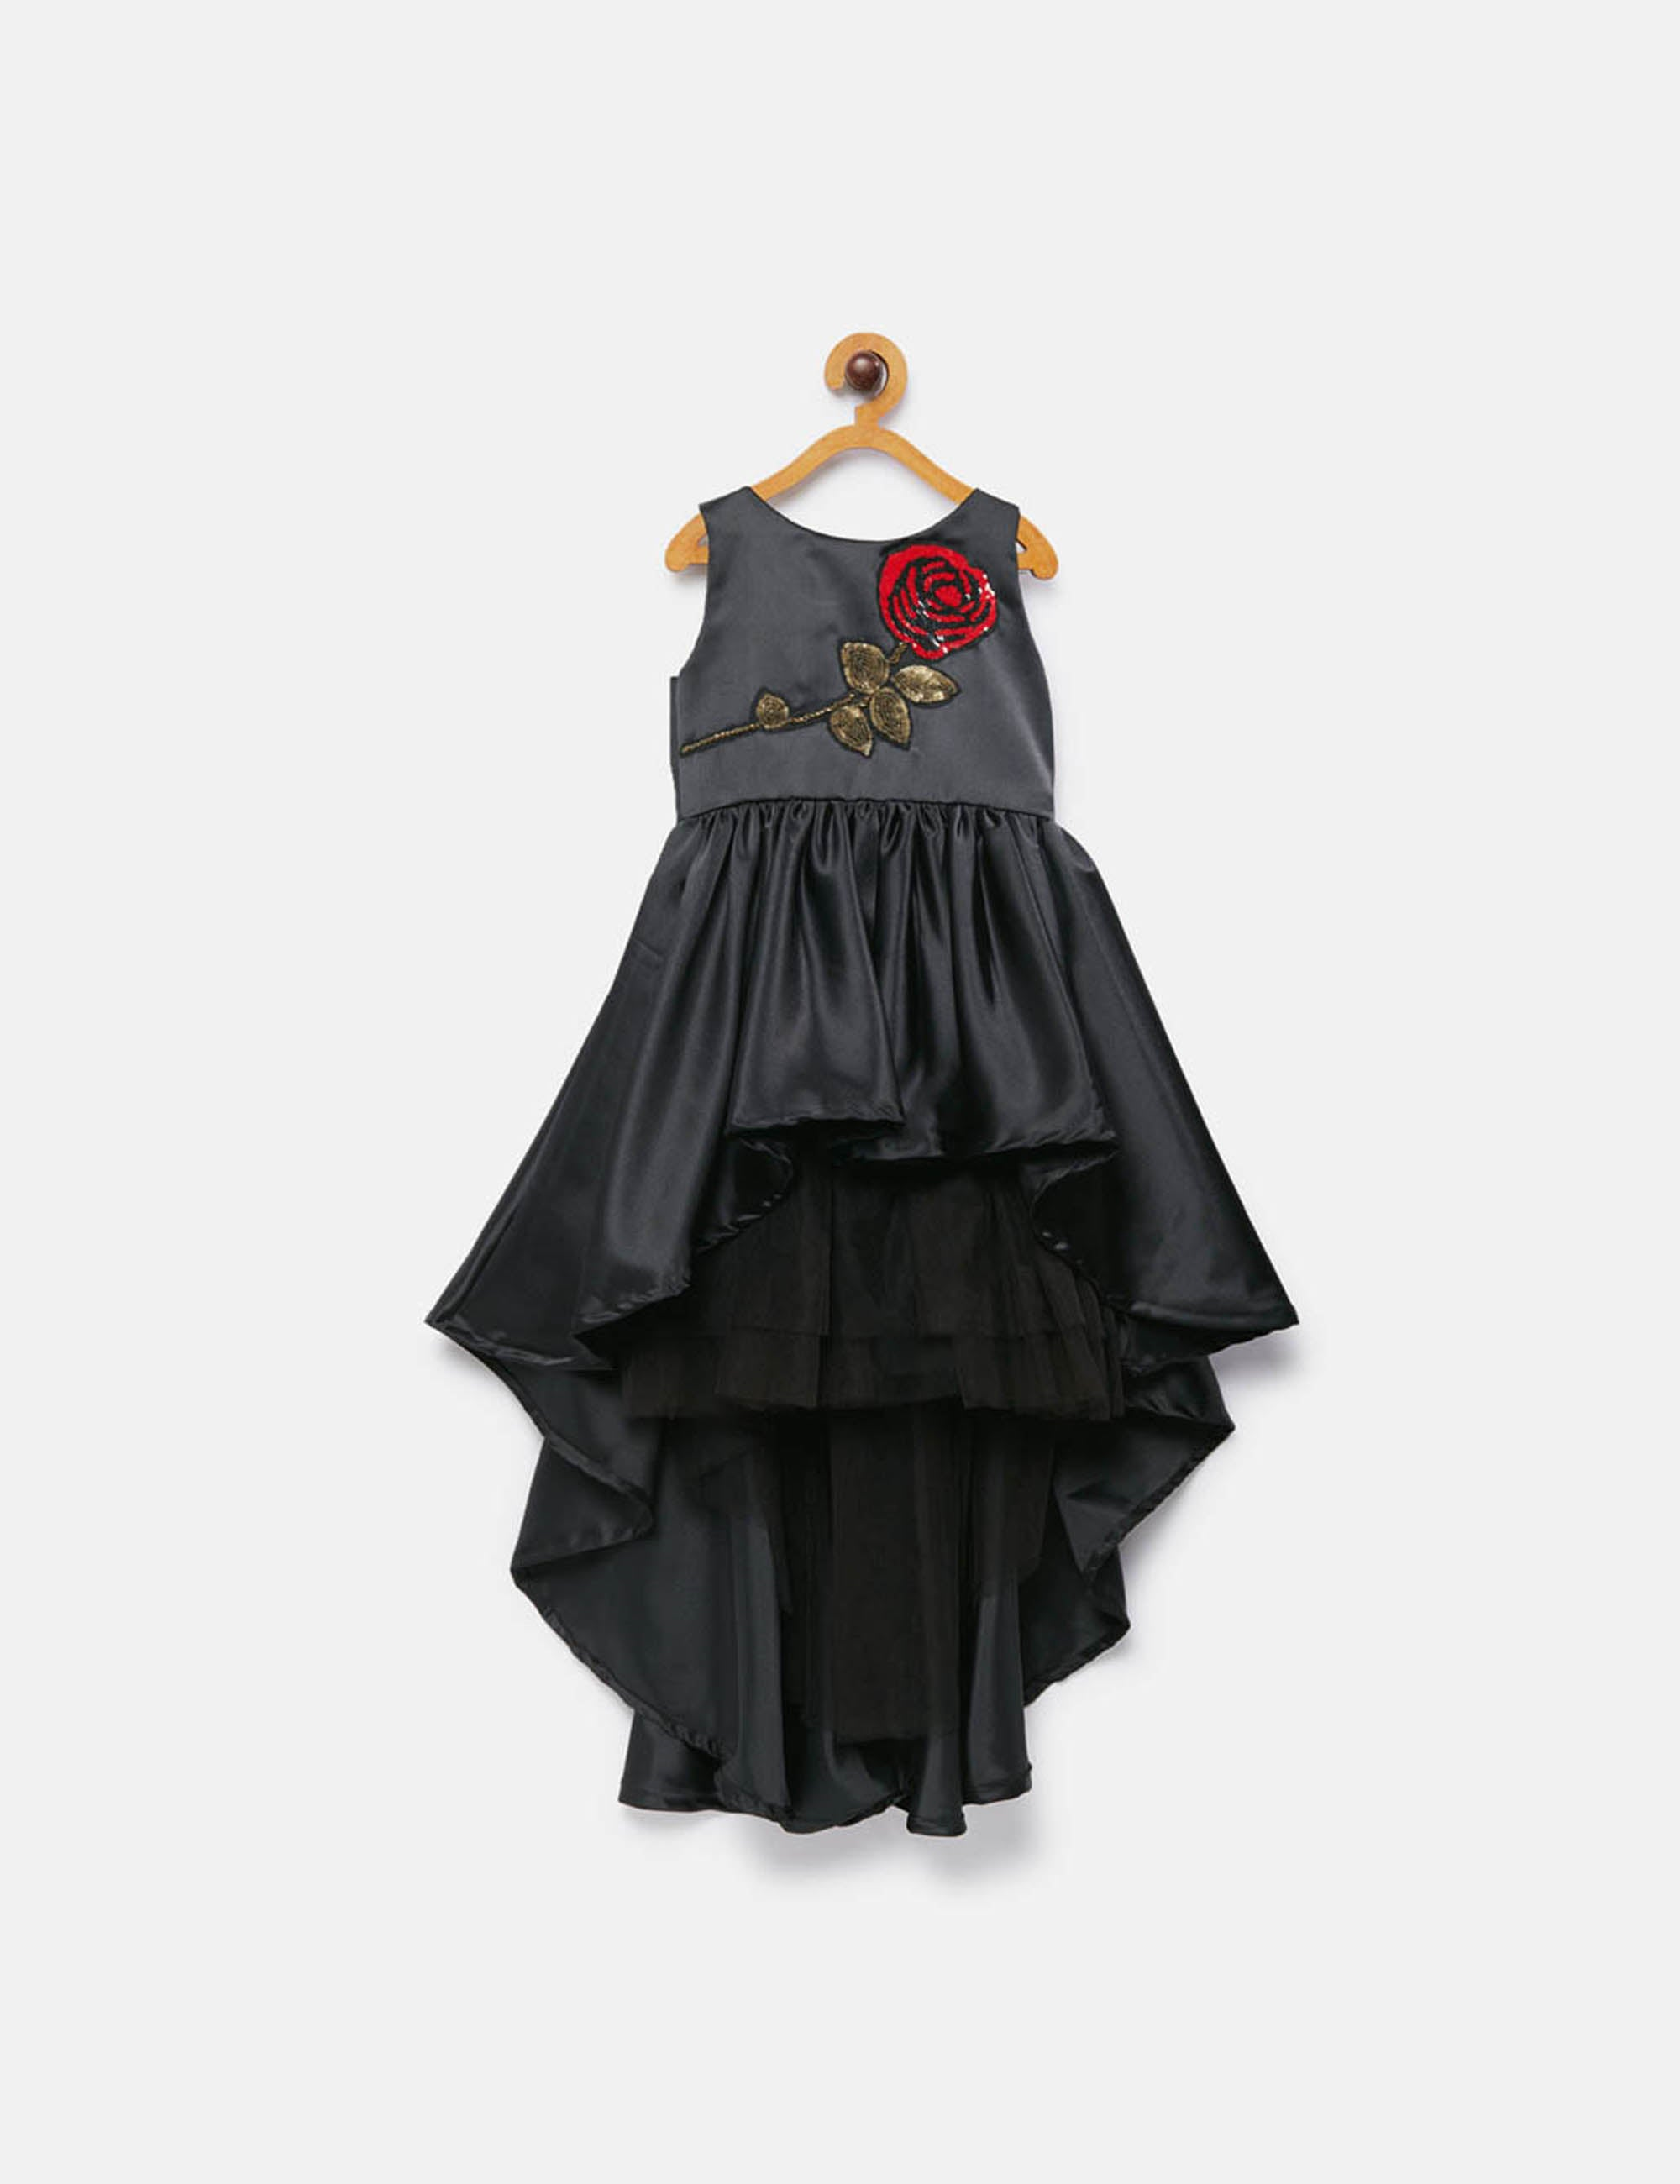 Black High Low Dress with Rose Embroidery